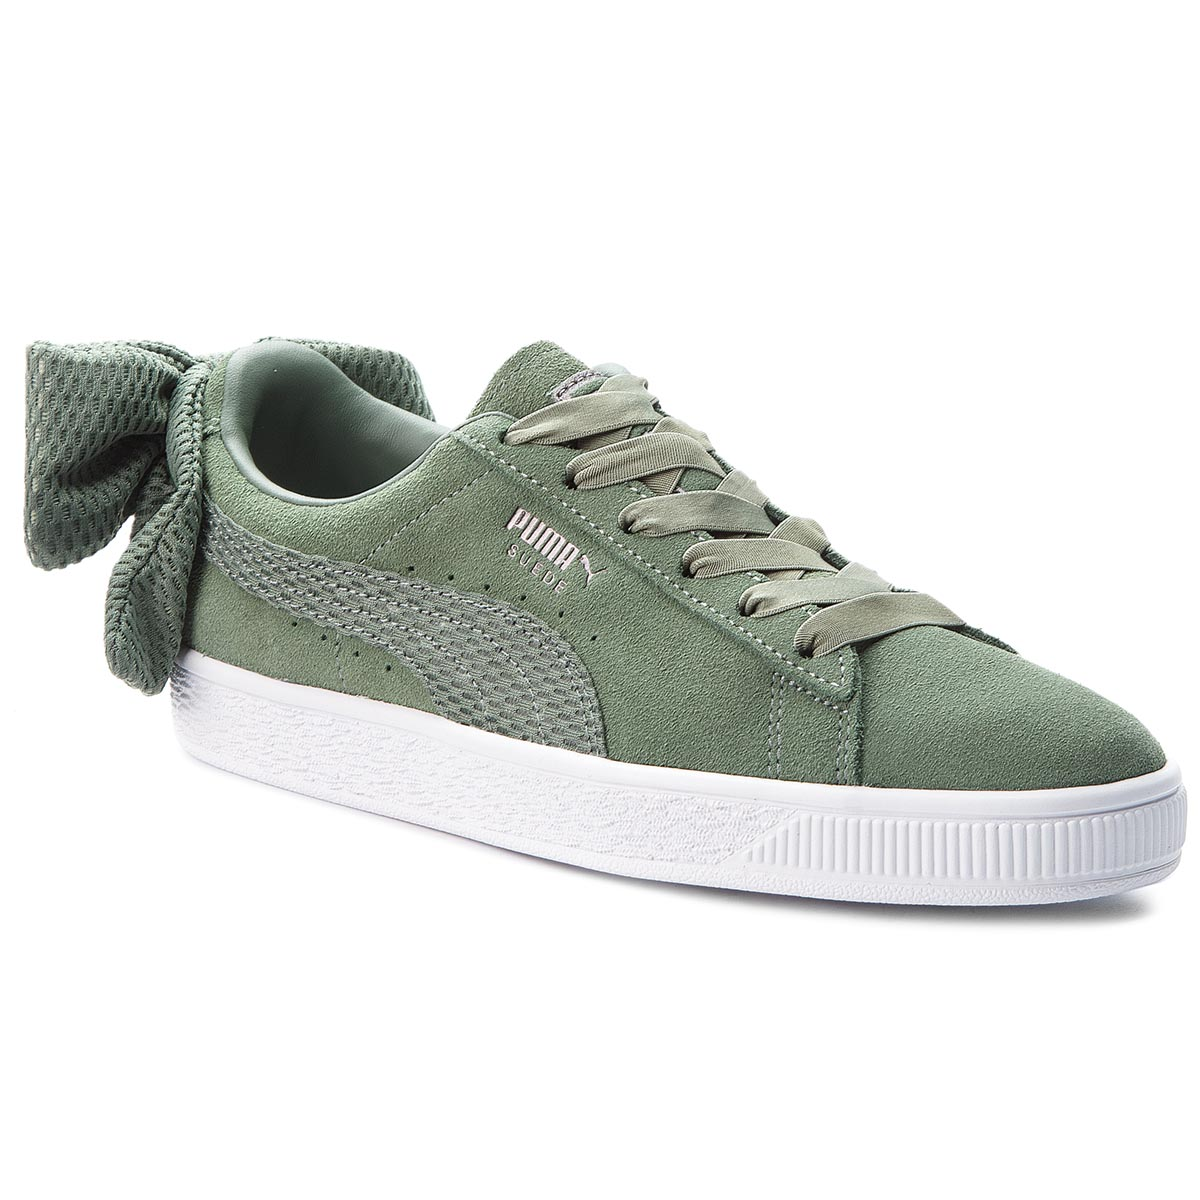 Sneakers PUMA - Suede Bow Uprising Wn's 367455 02 Laurel Wreath/Puma White